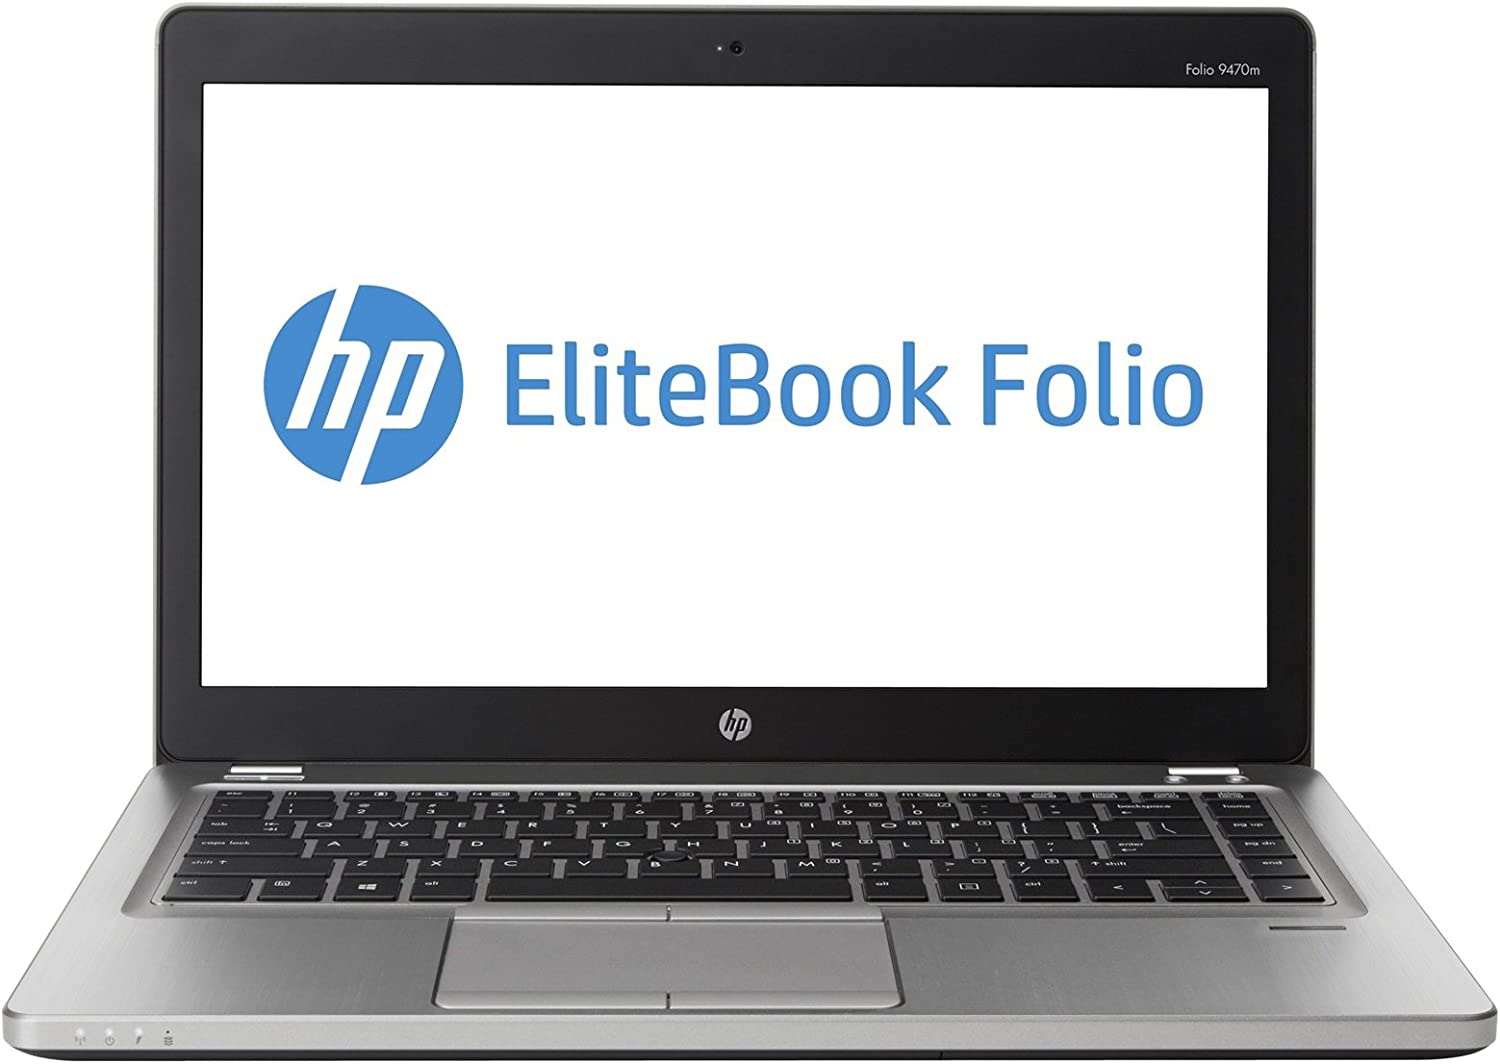 "HP EliteBook Folio 9470M 14"" Intel Core i5-3437U 1.9GHz 16GB 320G SATA Windows 10 Professional (Renewed)"